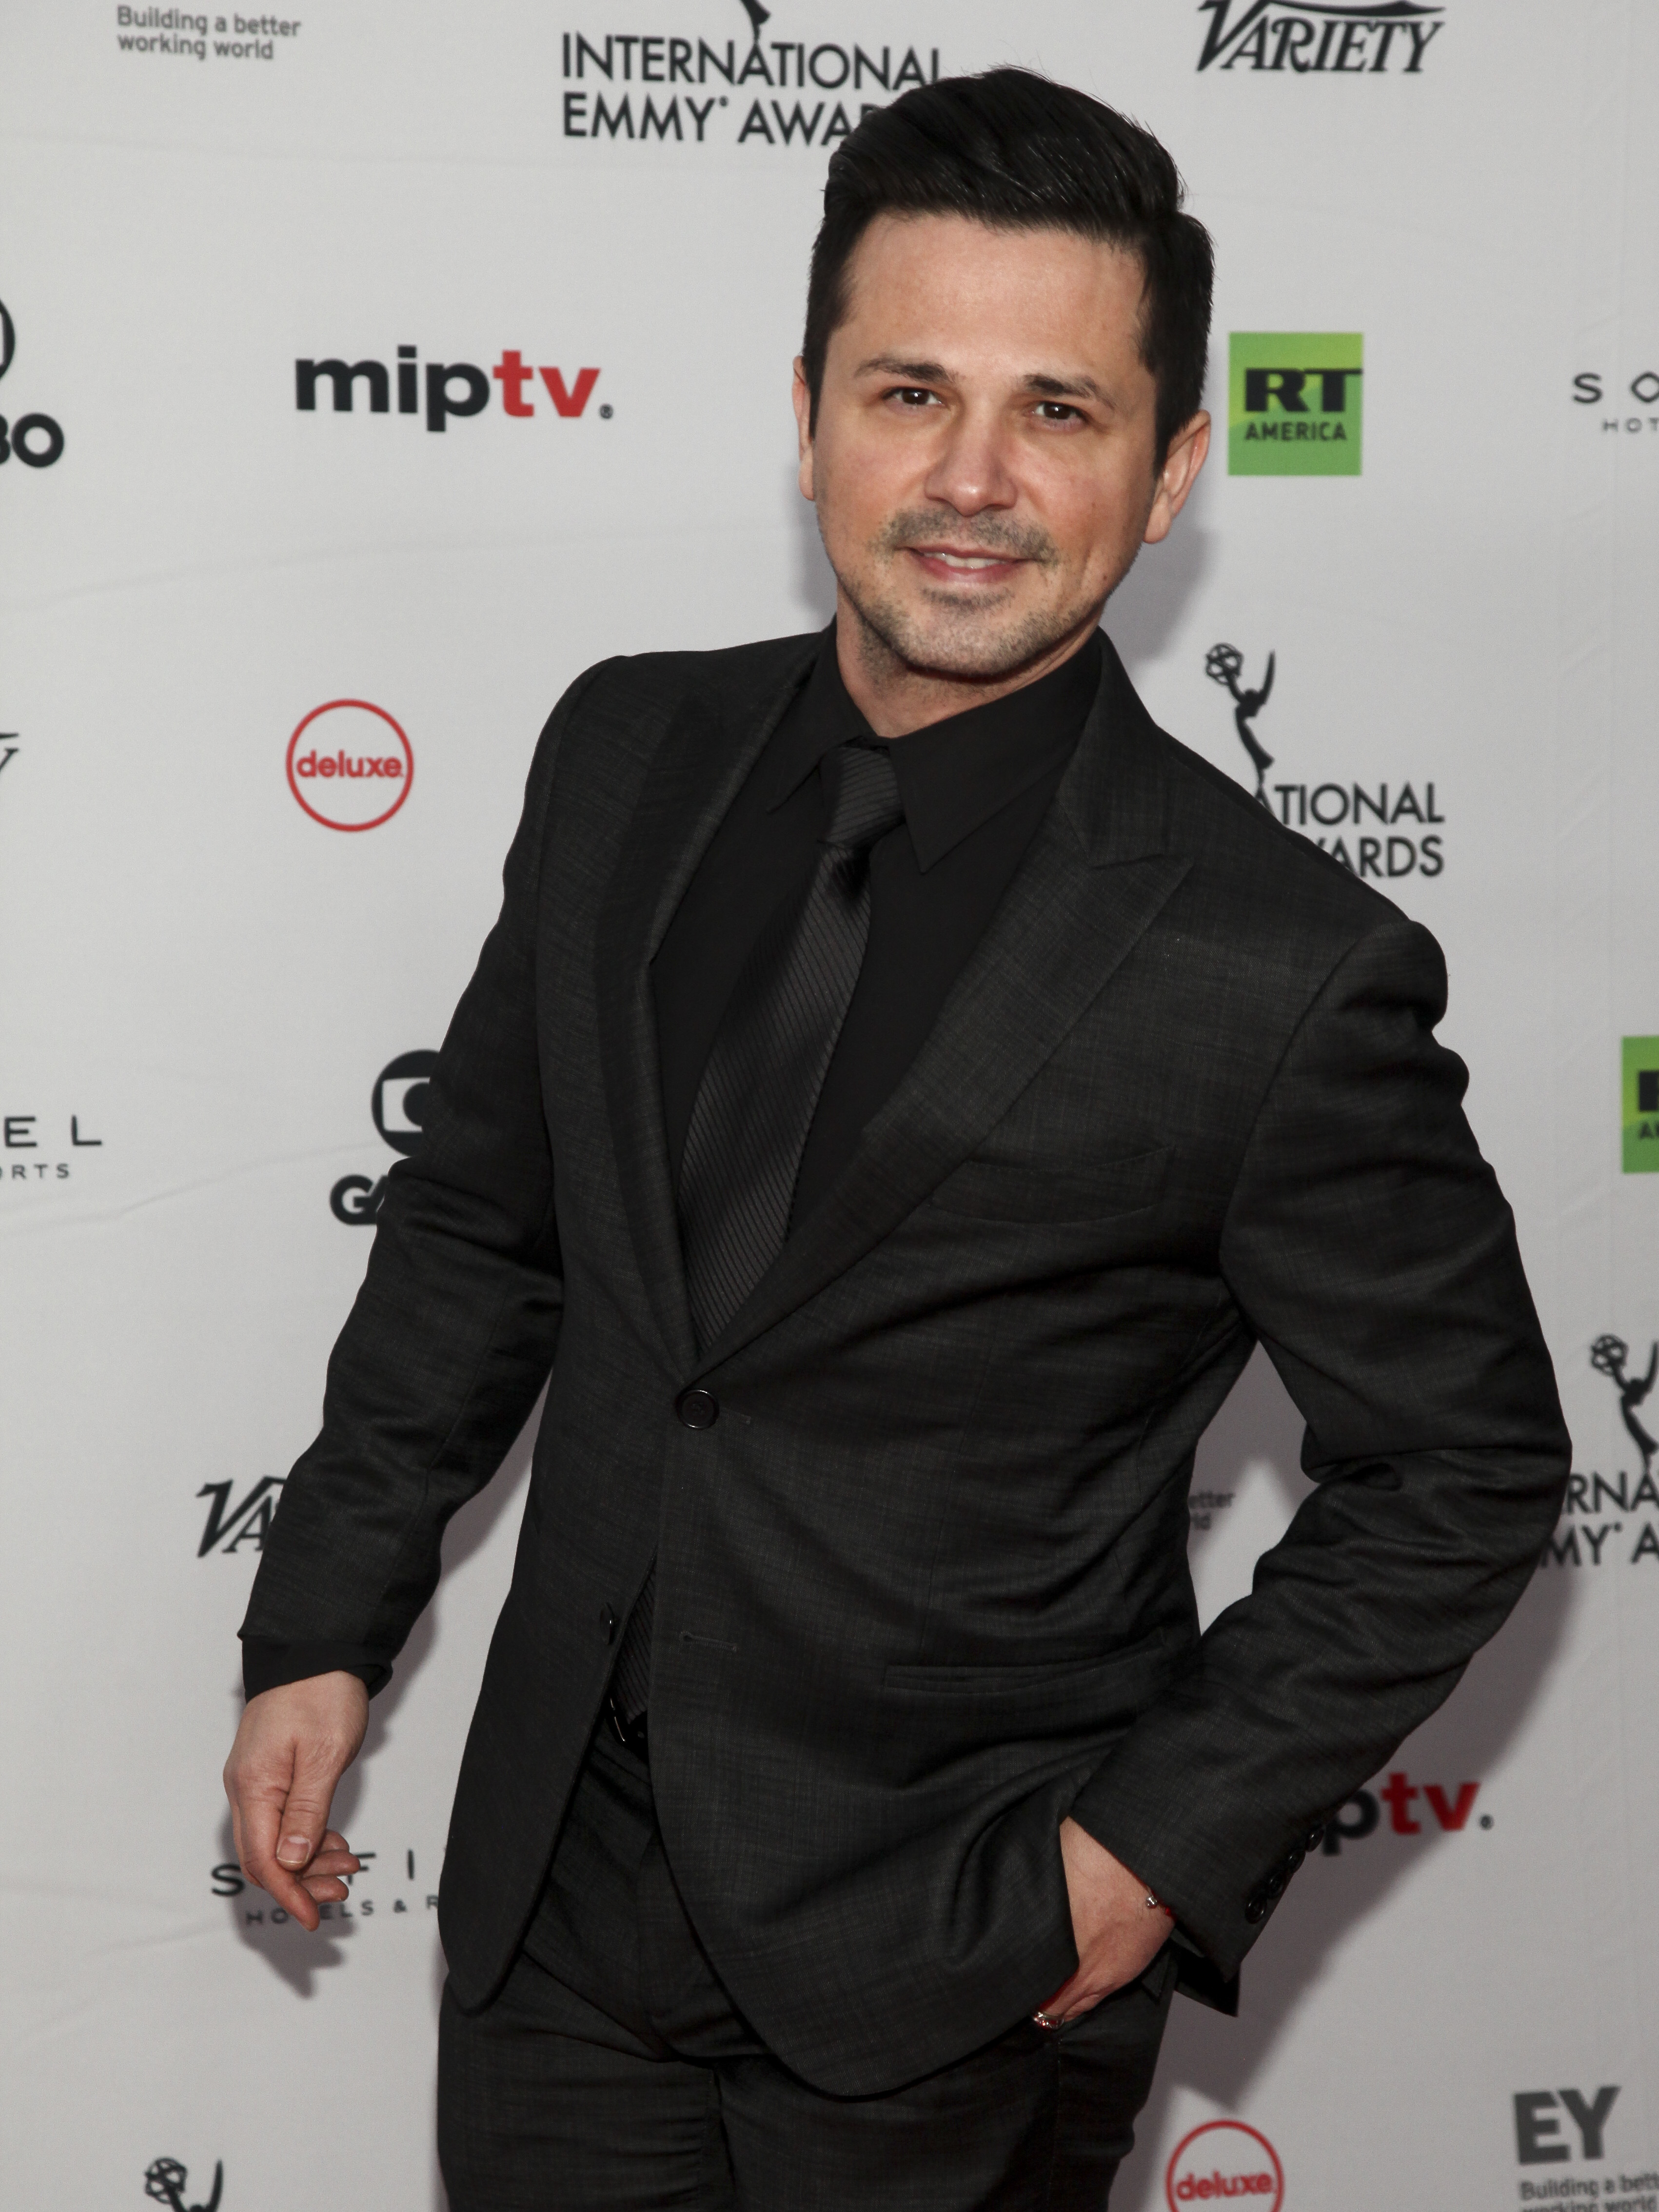 Freddy Rodriguez attends the 45th International Emmy Awards at the New York Hilton on Monday, Nov. 20, 2017, in New York. (Photo by Andy Kropa/Invision/AP)